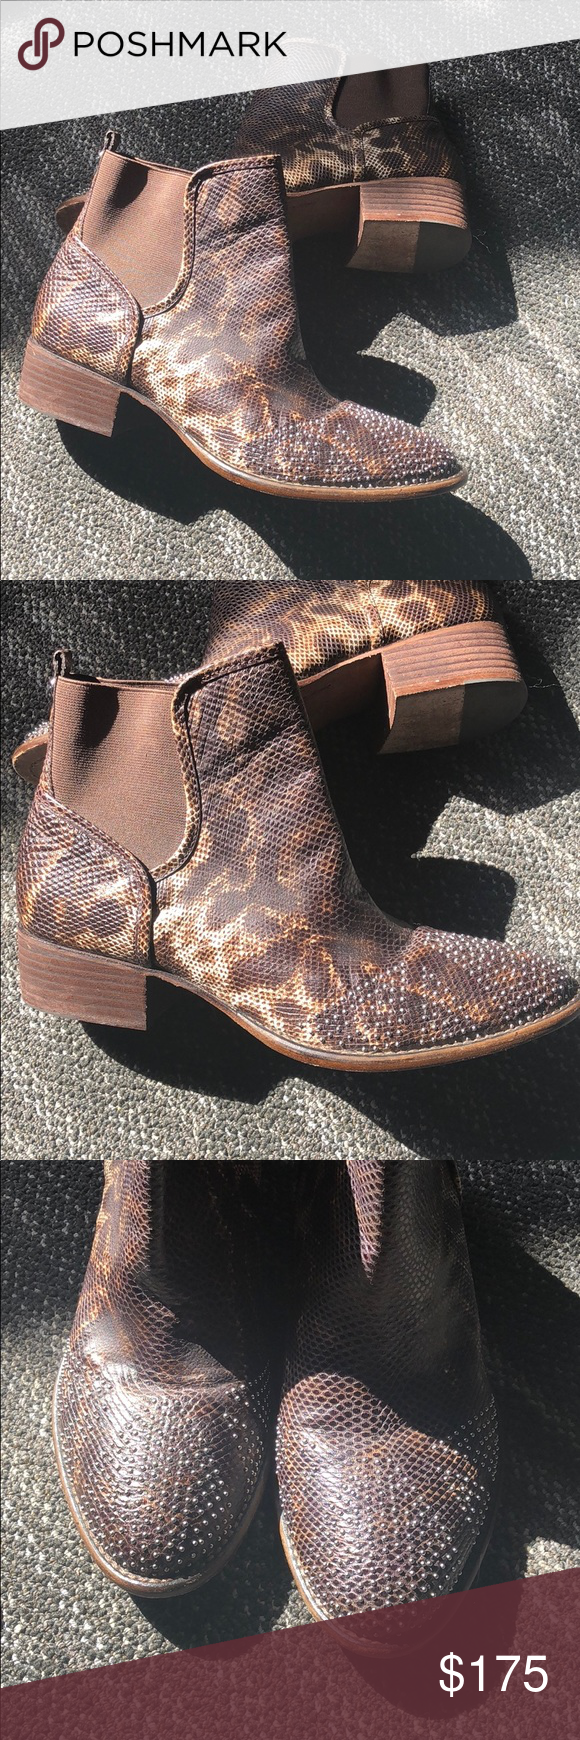 c8c8809c4595 Donald J Pliner Booties Excellent used condition - these boots are amazing!  - leopard snakeprint pattern with studs - the soles have some wear but  still a ...